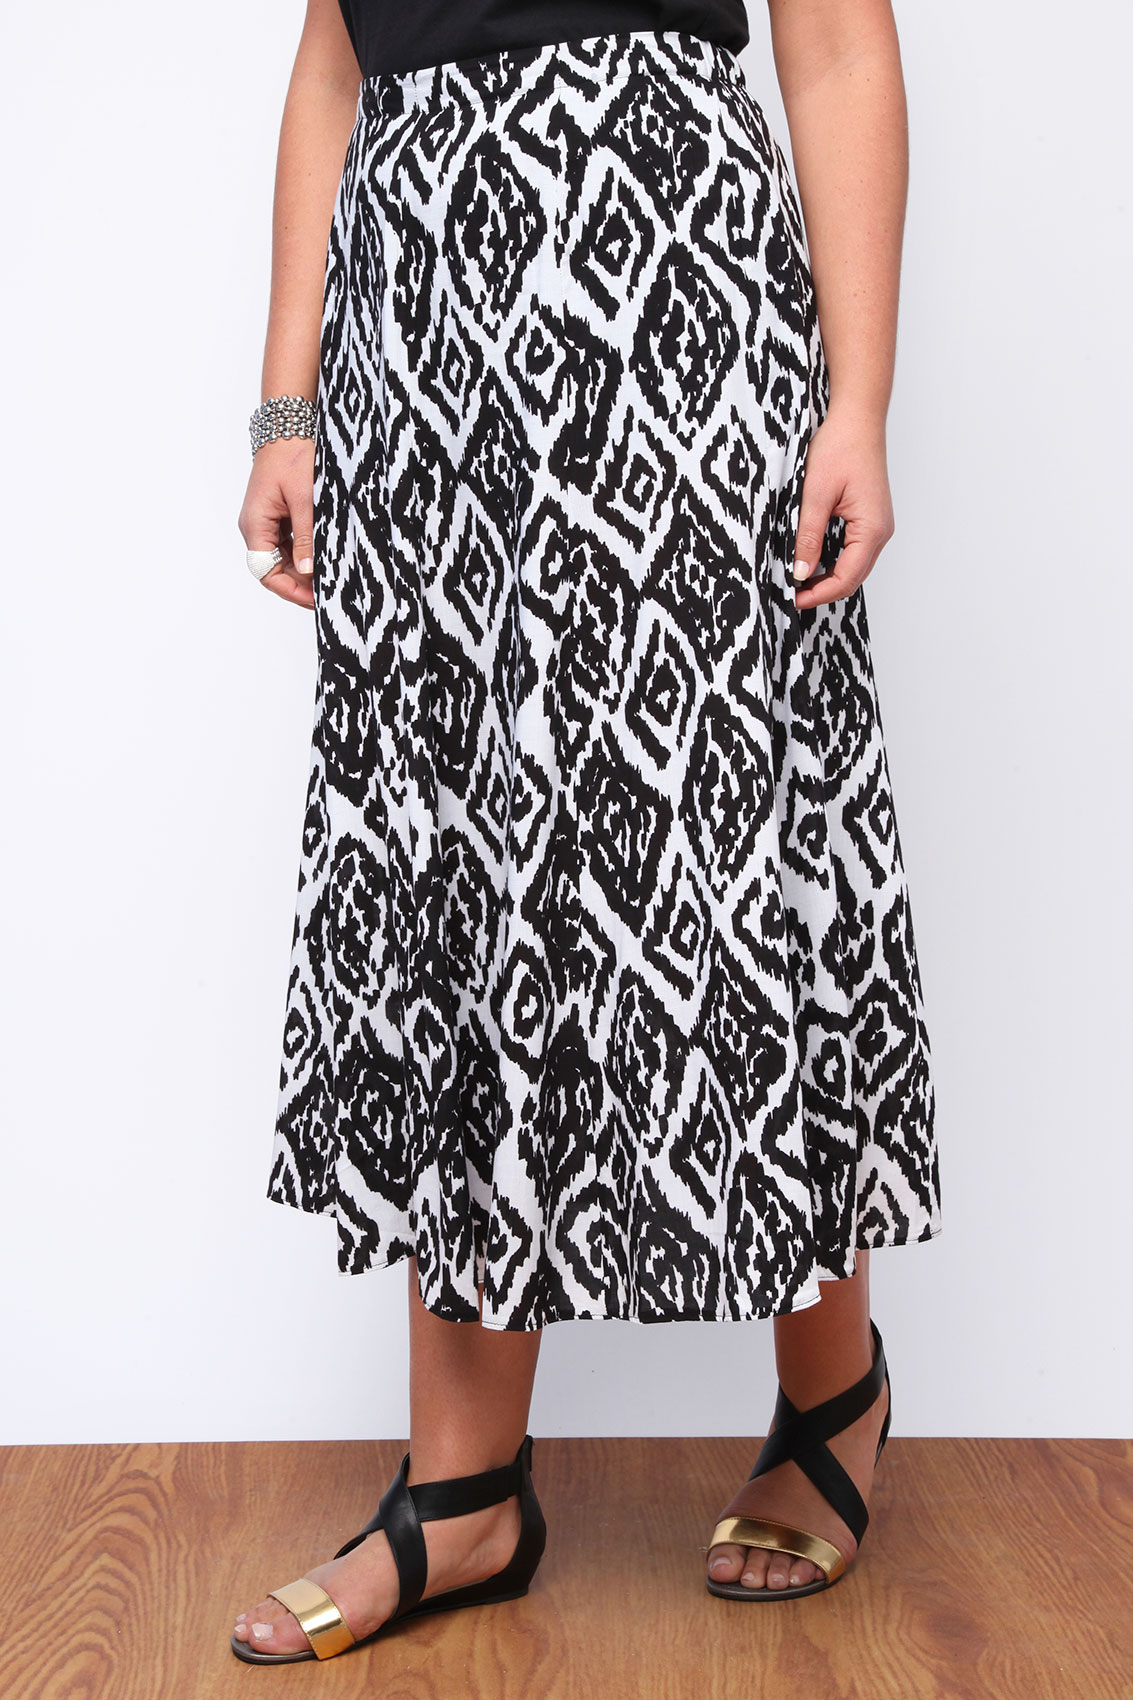 Cute and comfy maxi skirt by LulaRoe. 96% polyester, 4% spandex. Machine washable. Black with an aztec tribal print. Size is small. Life is short.